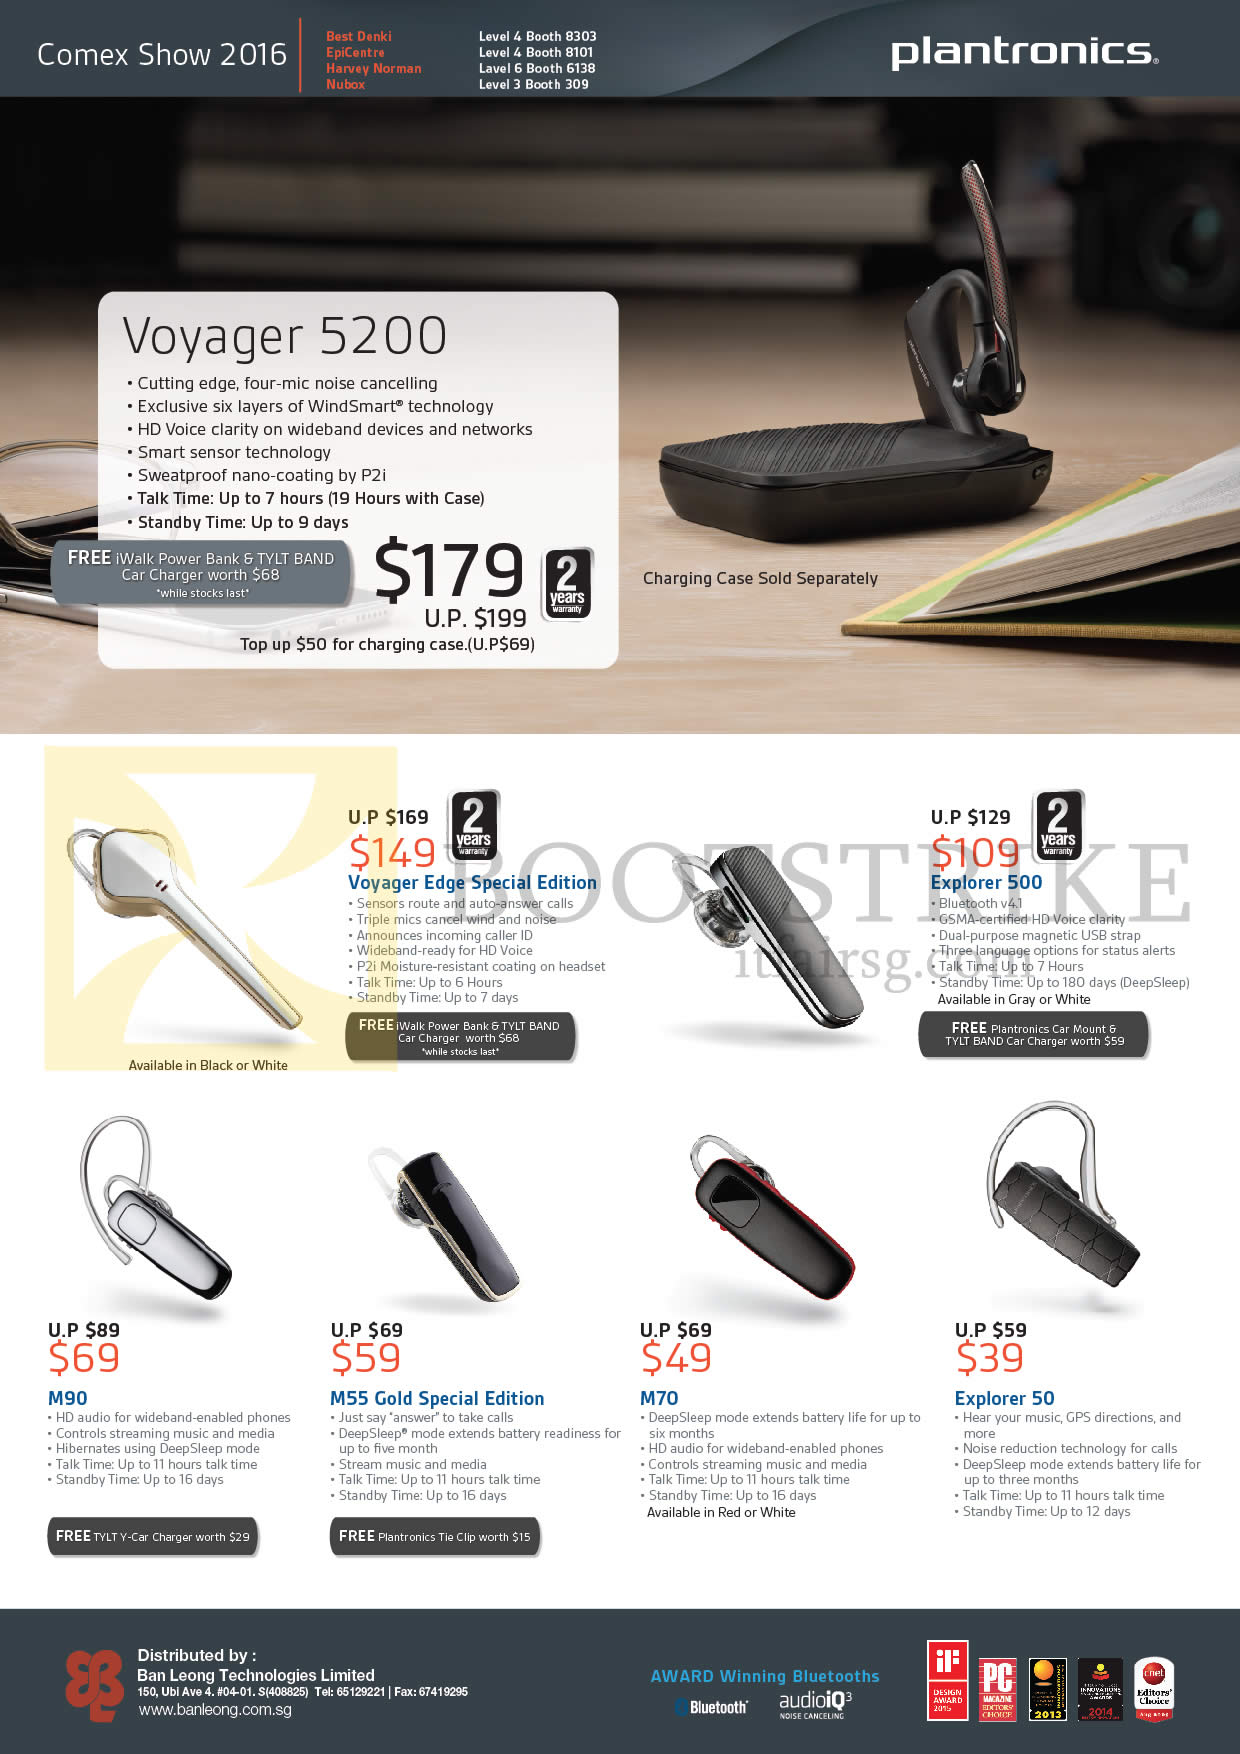 COMEX 2016 price list image brochure of Plantronics Bluetooth Headsets Voyager 5200, Edge Special Edition, Explorer 500, M90, M55 Gold Special Edition, M70, Explorer 50